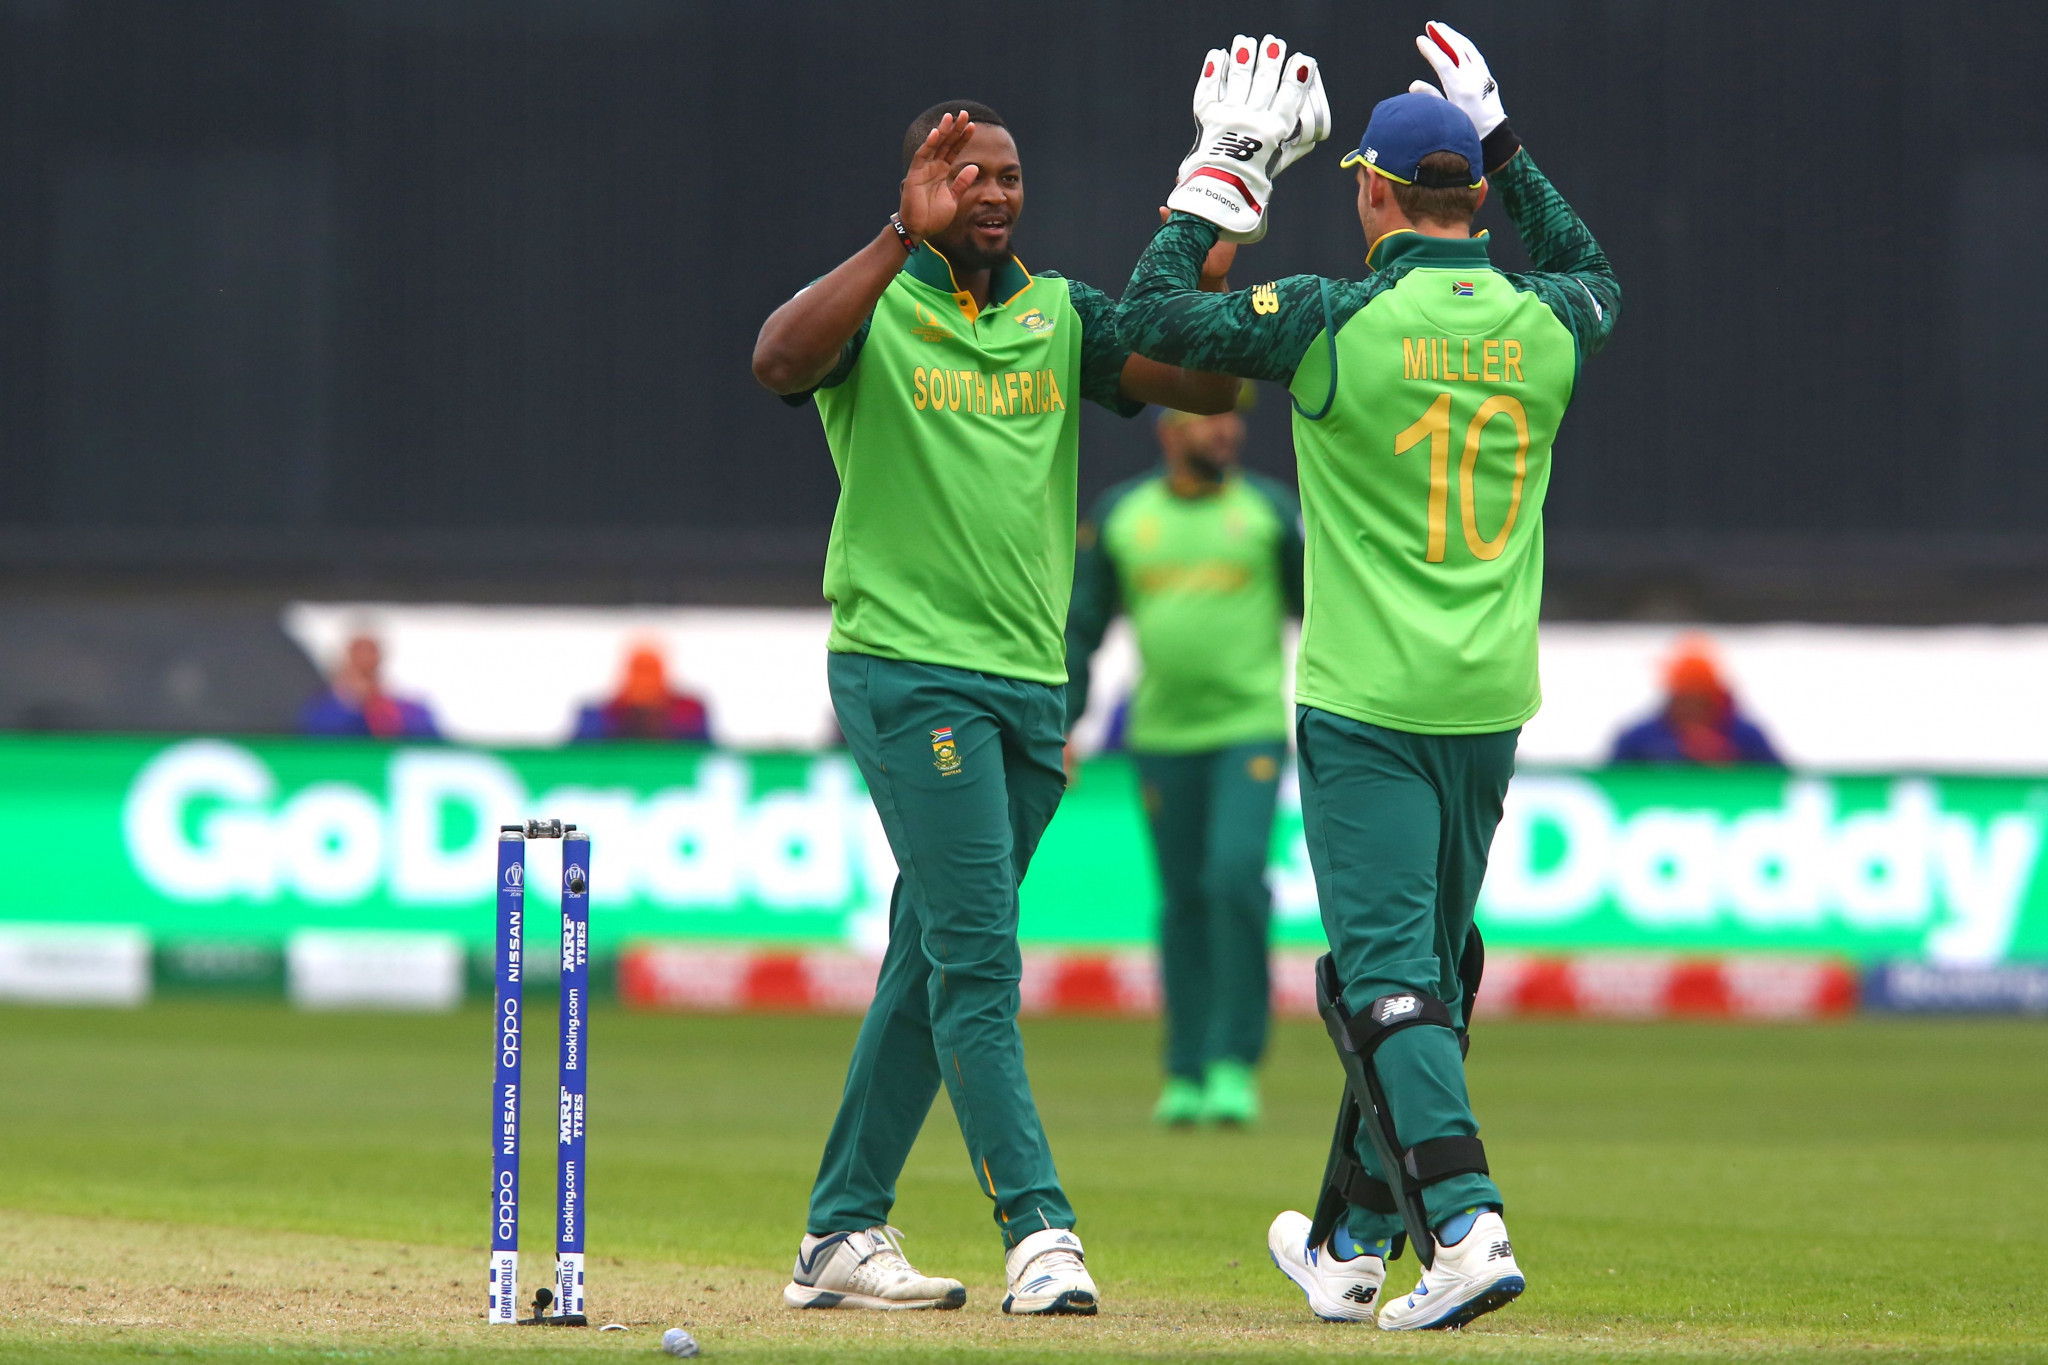 South Africa outplay Sri Lanka in first warm-up game for ICC Cricket World Cup